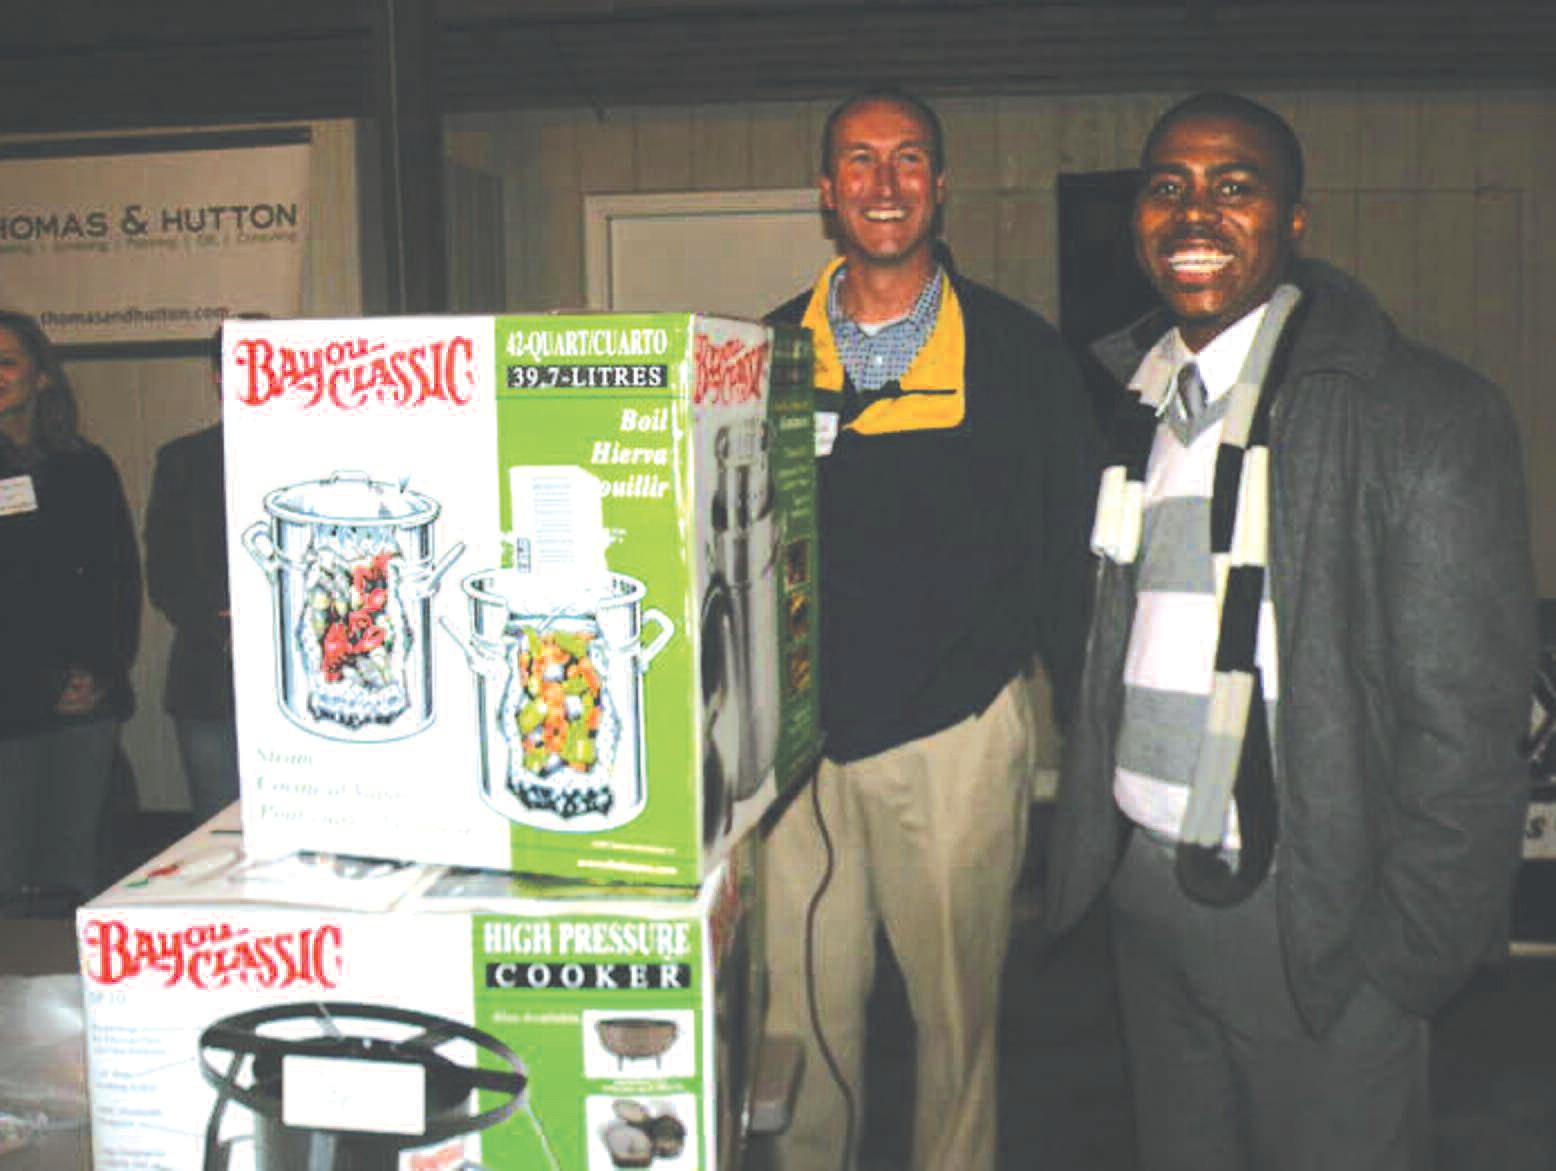 Gil Jones, Jr. of Cumulus Radio provided the music and won a door prize.